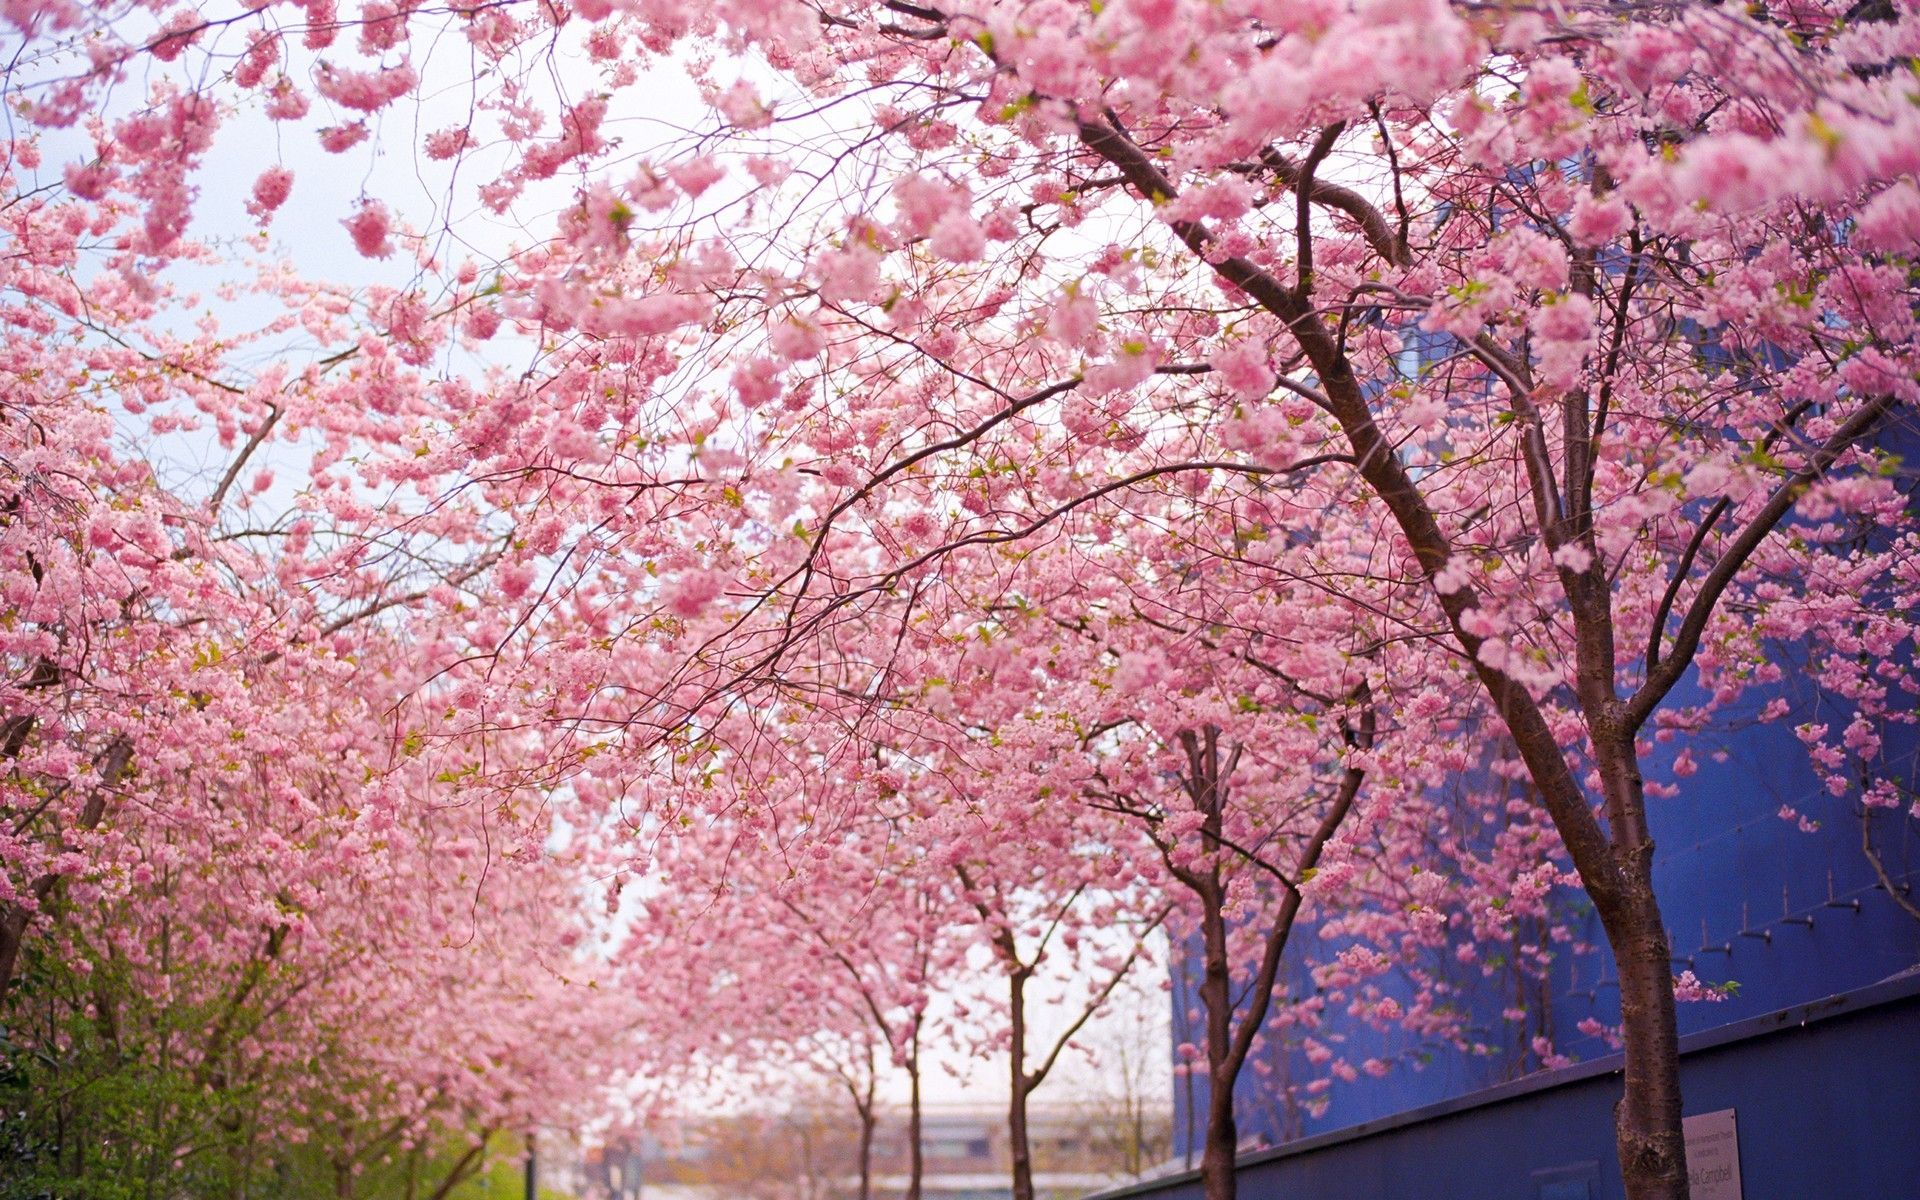 1920x1200 Landscape Photography Stunning Tree Gallery Trees Tree 1920a 1200 Cherry Blossom Spring Wallpaper Spring Flowers Wallpaper Cherry Blossom Wallpaper